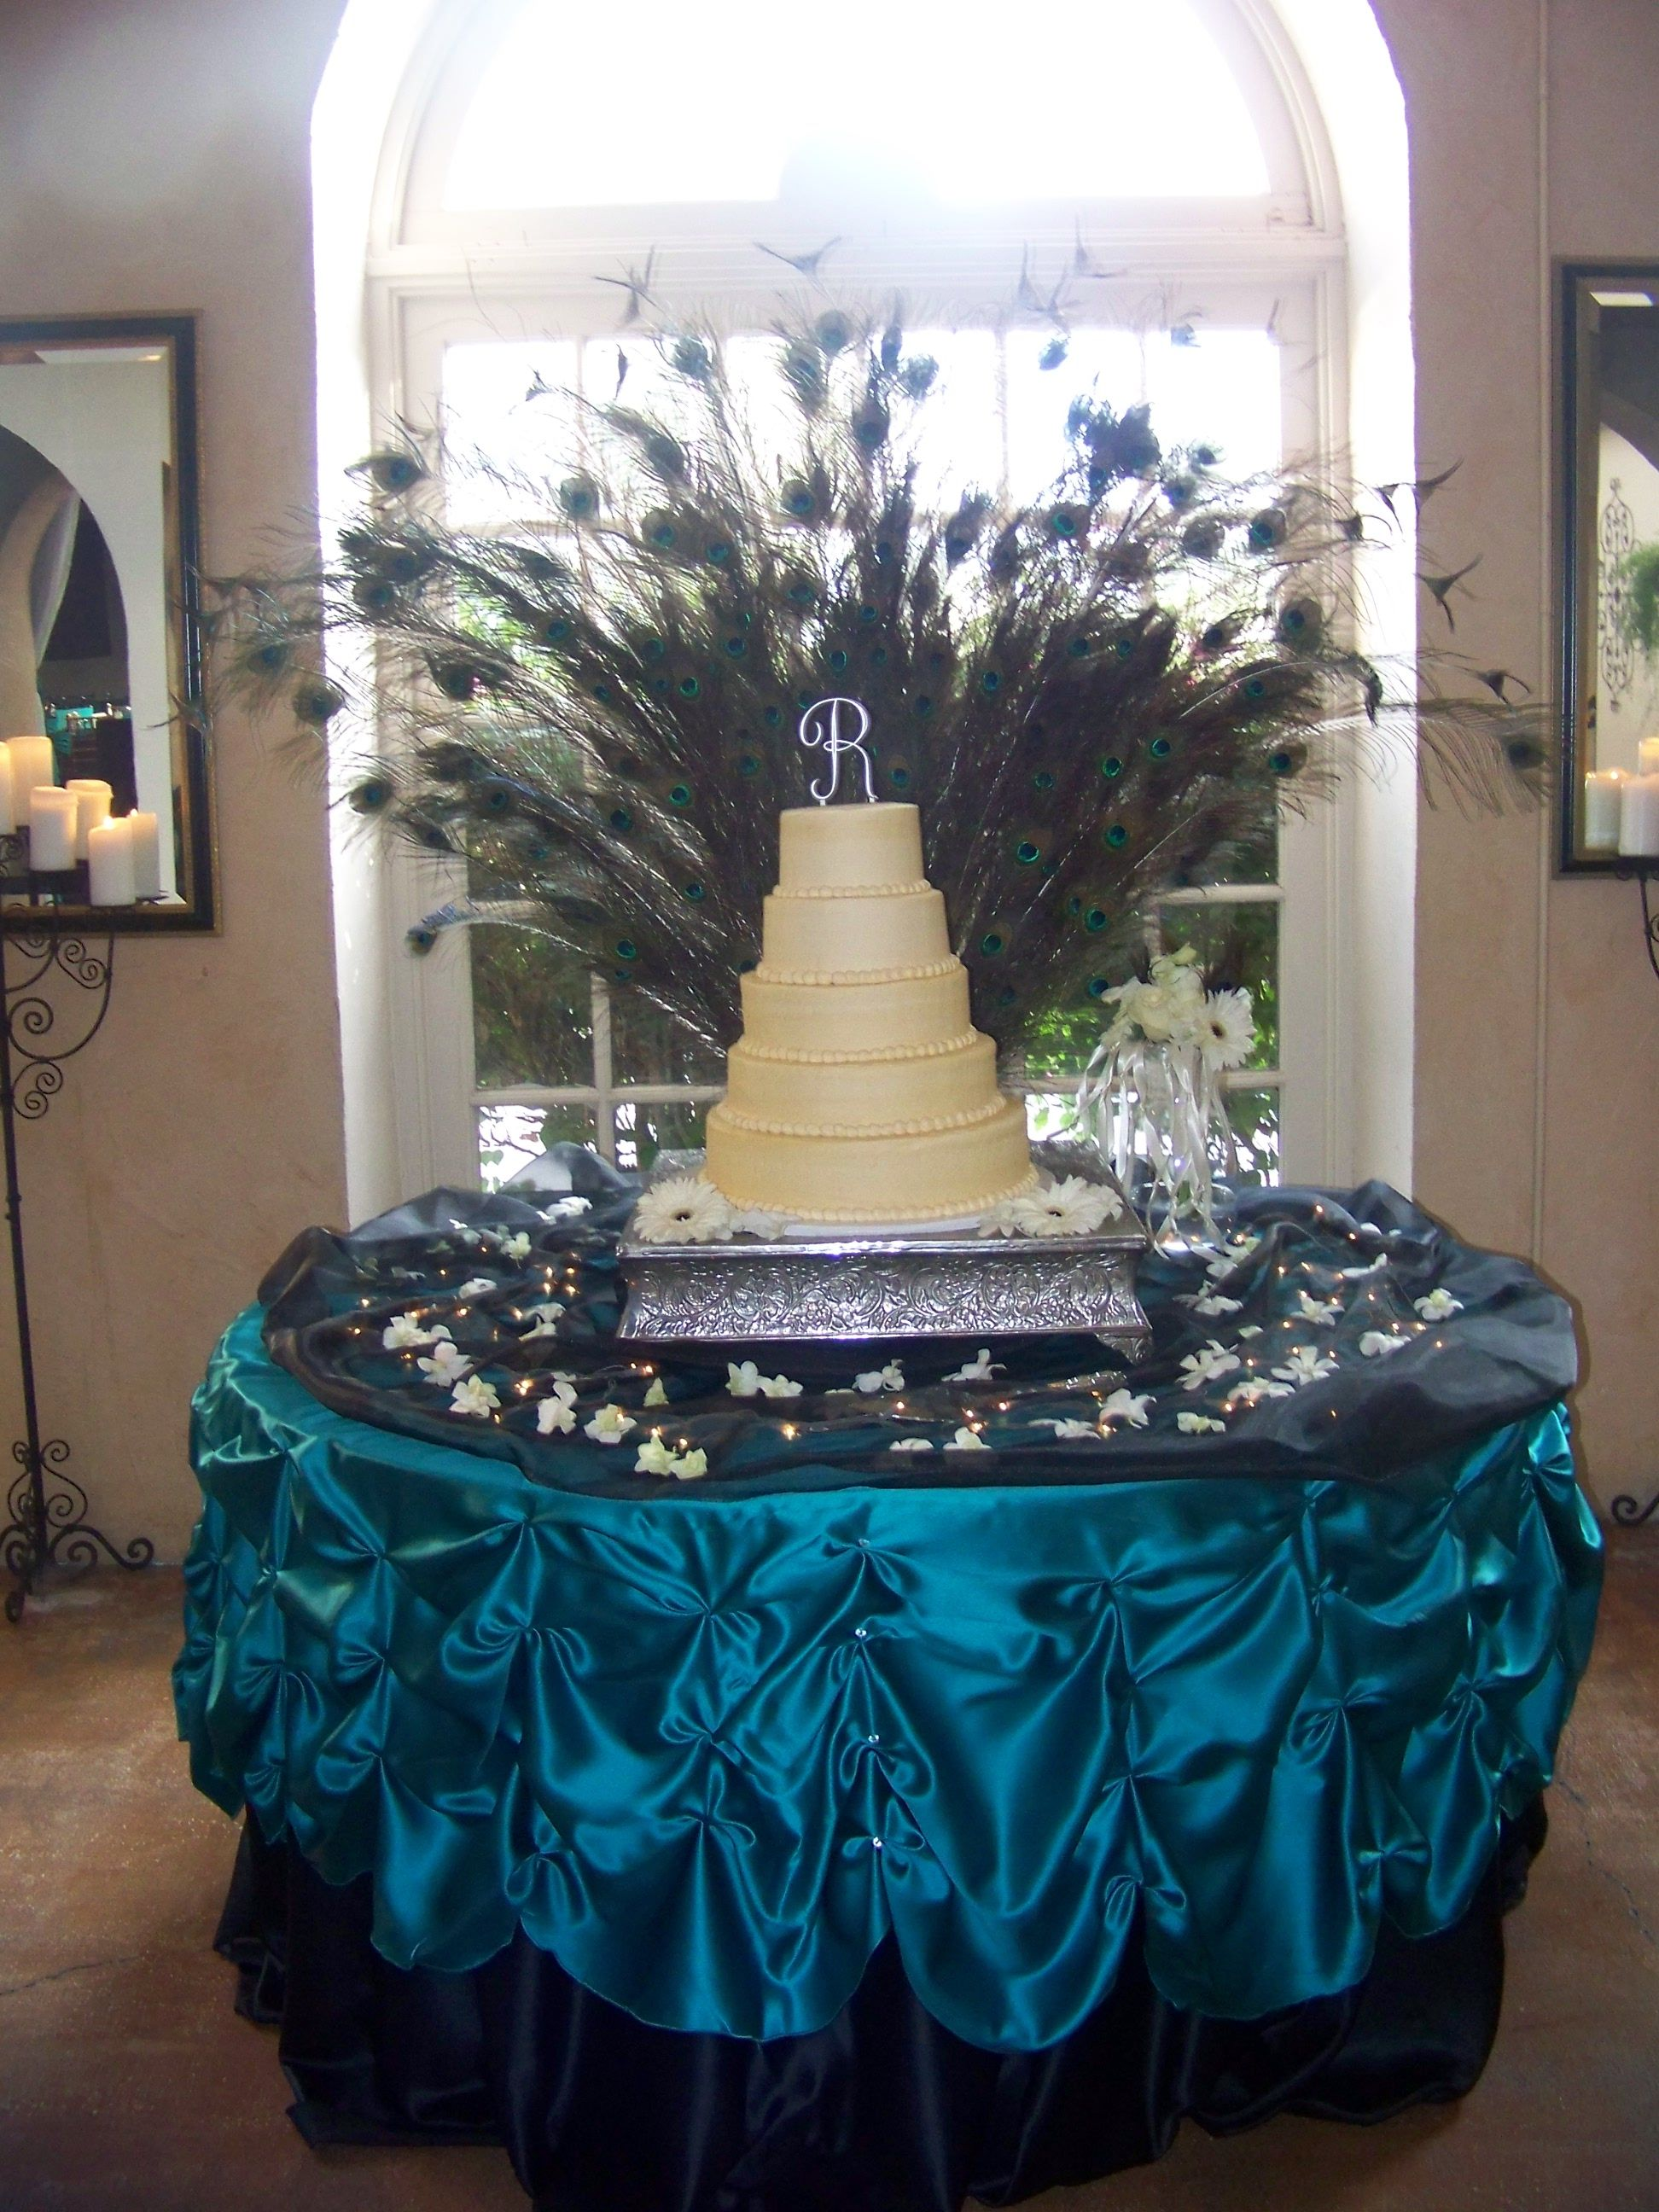 Wedding cake table decoration ideas  Now this is a statement and I love the letter on topPeacock cake